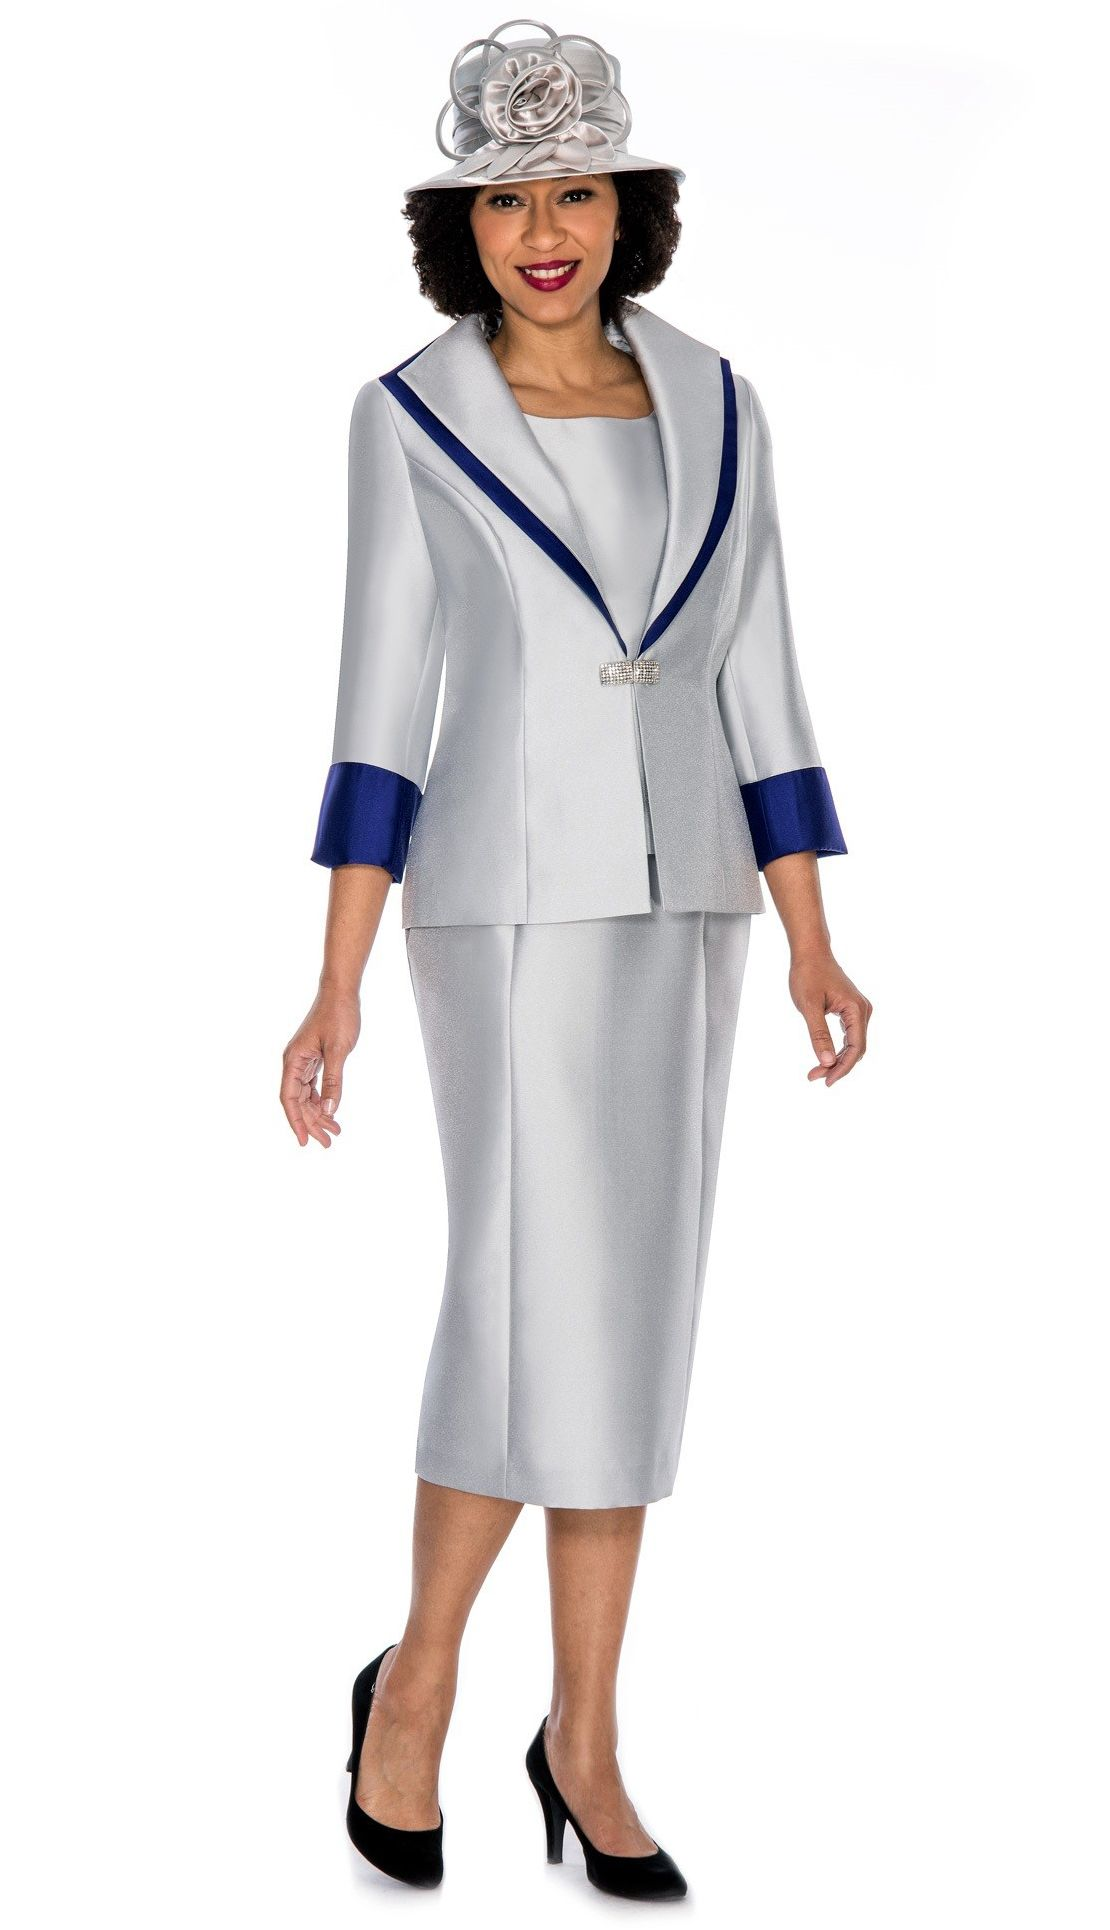 b78c33de9b5 Style Giovanna 0854-SIL 3pc Women s Suit with wide collar ...